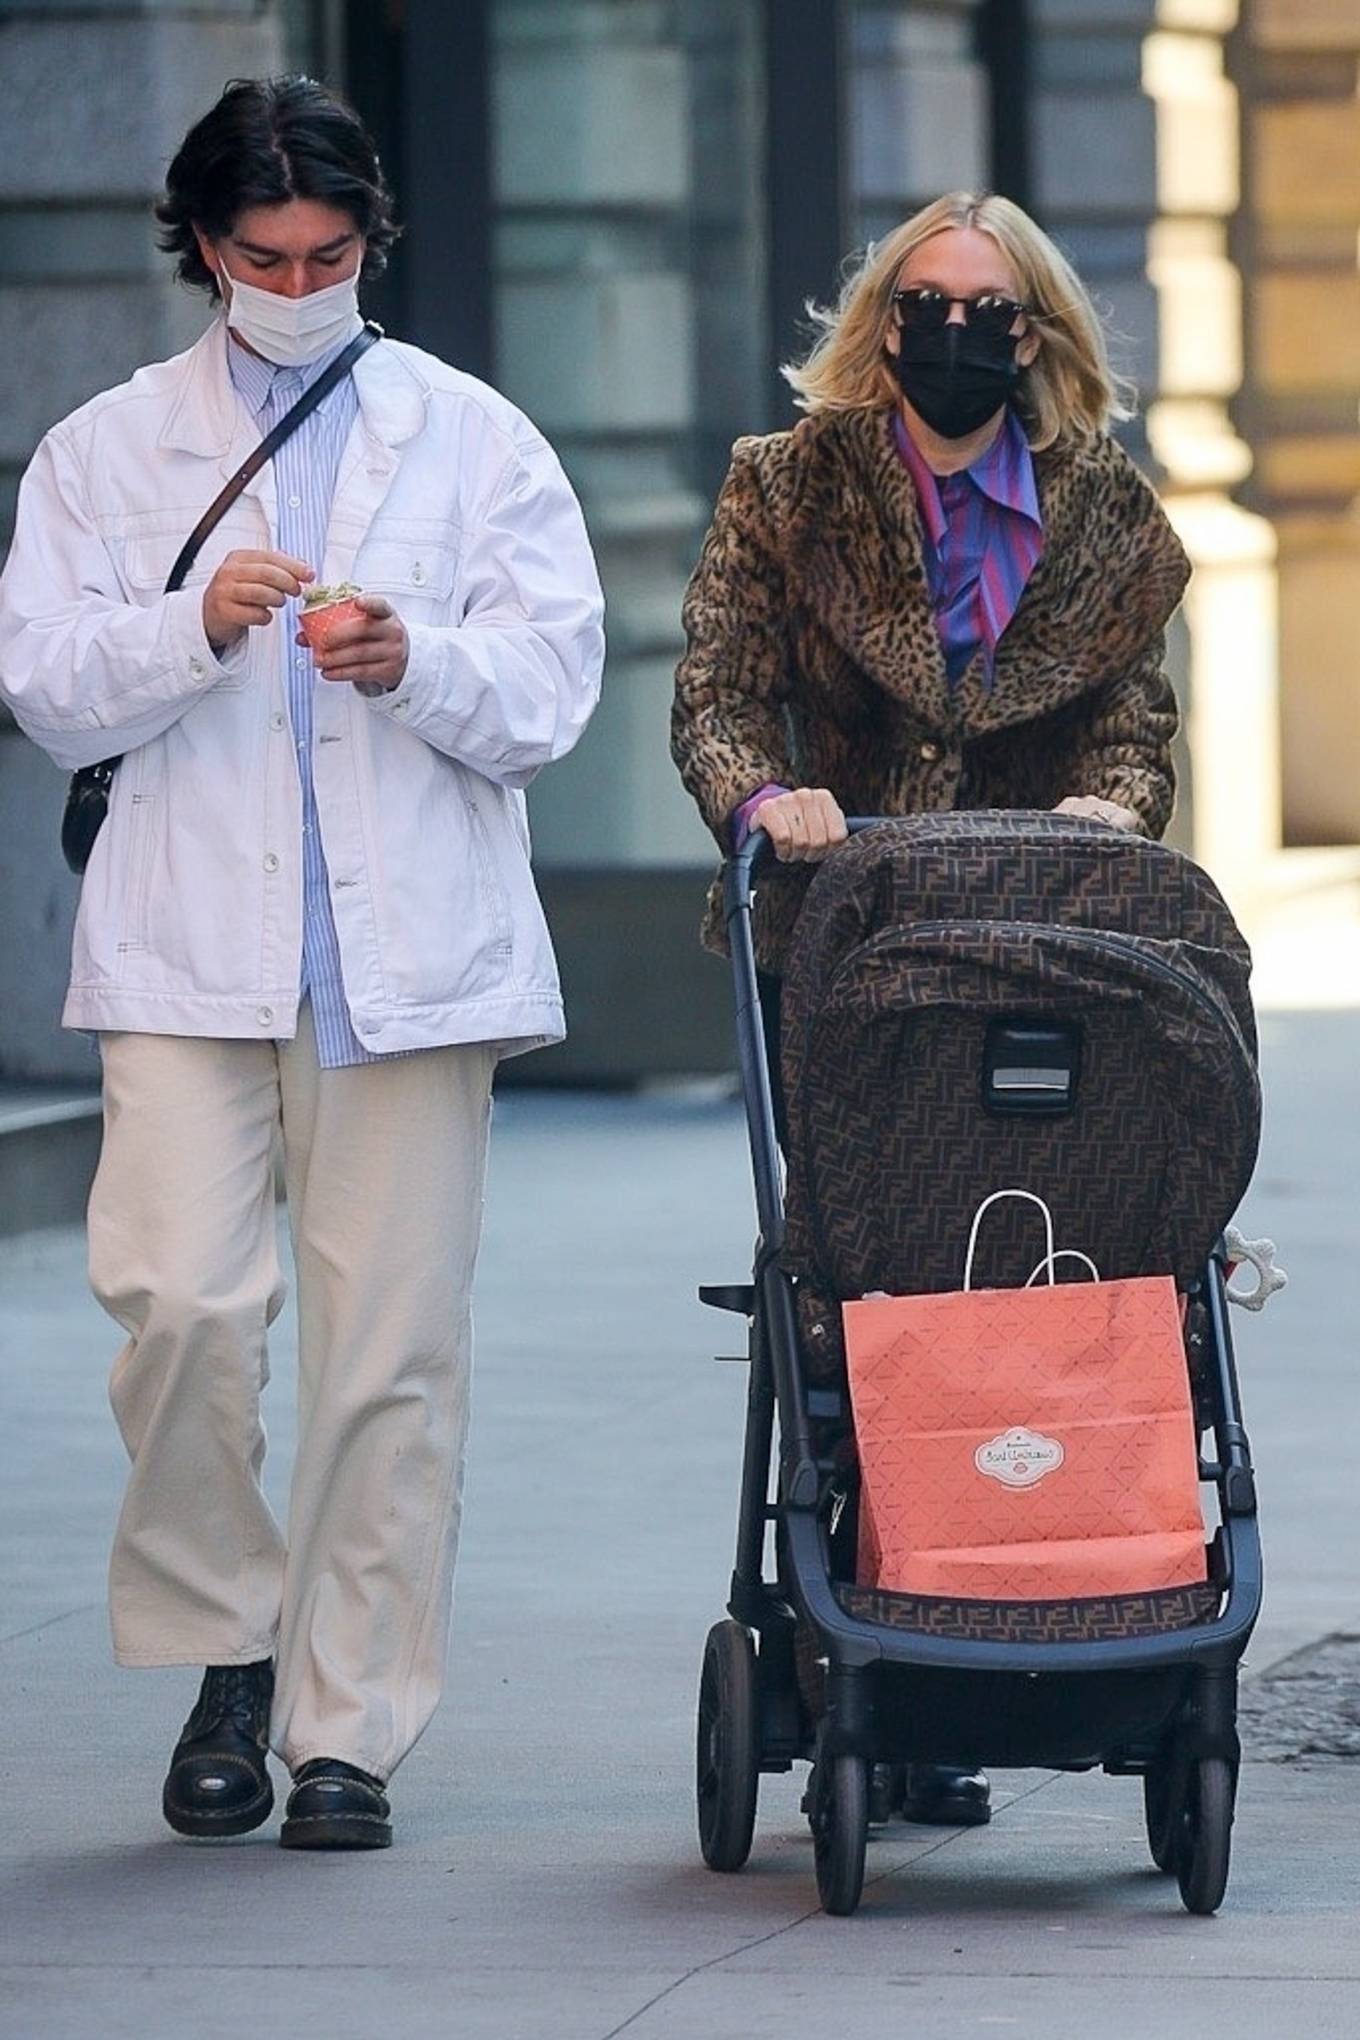 Chloe Sevigny - With husband Sinisa Mackovic strolling with their baby in New York